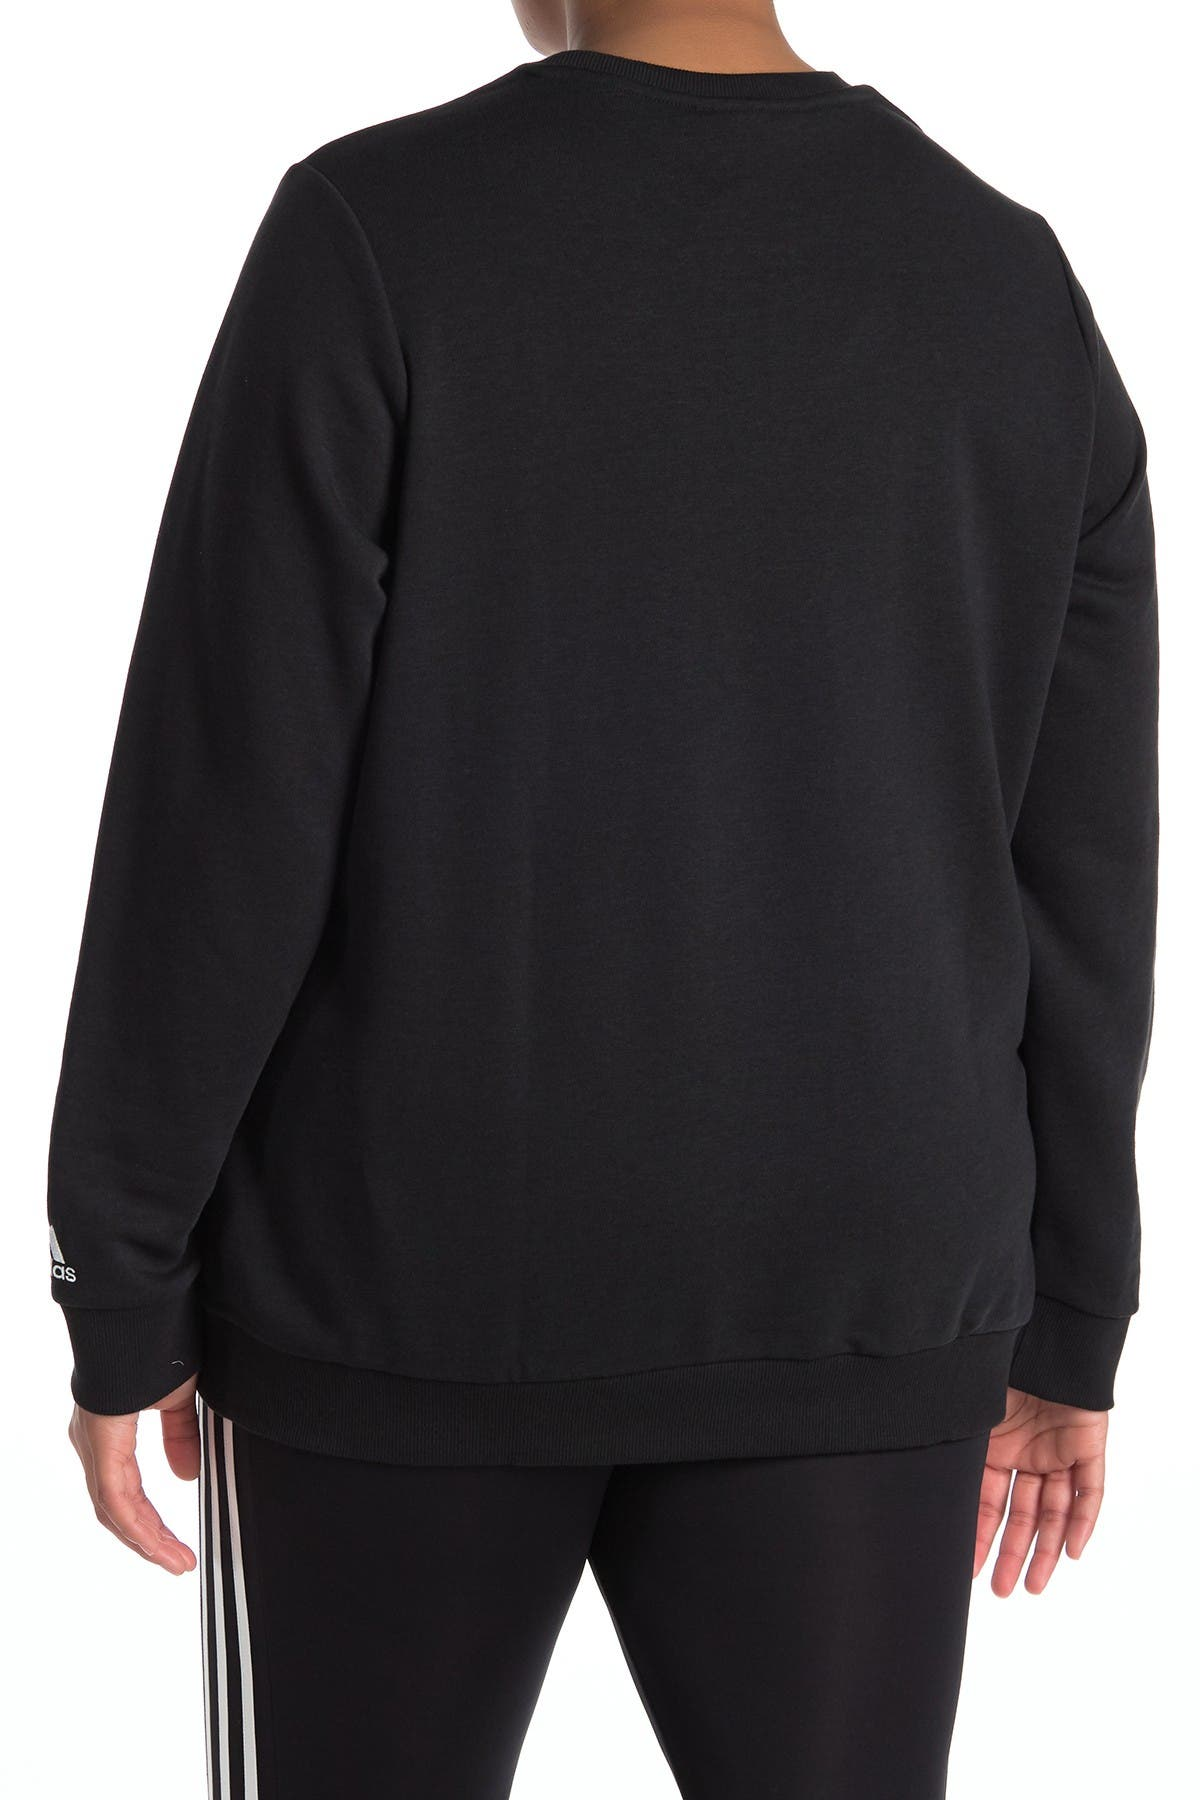 Image of adidas Essentials Sweatshirt